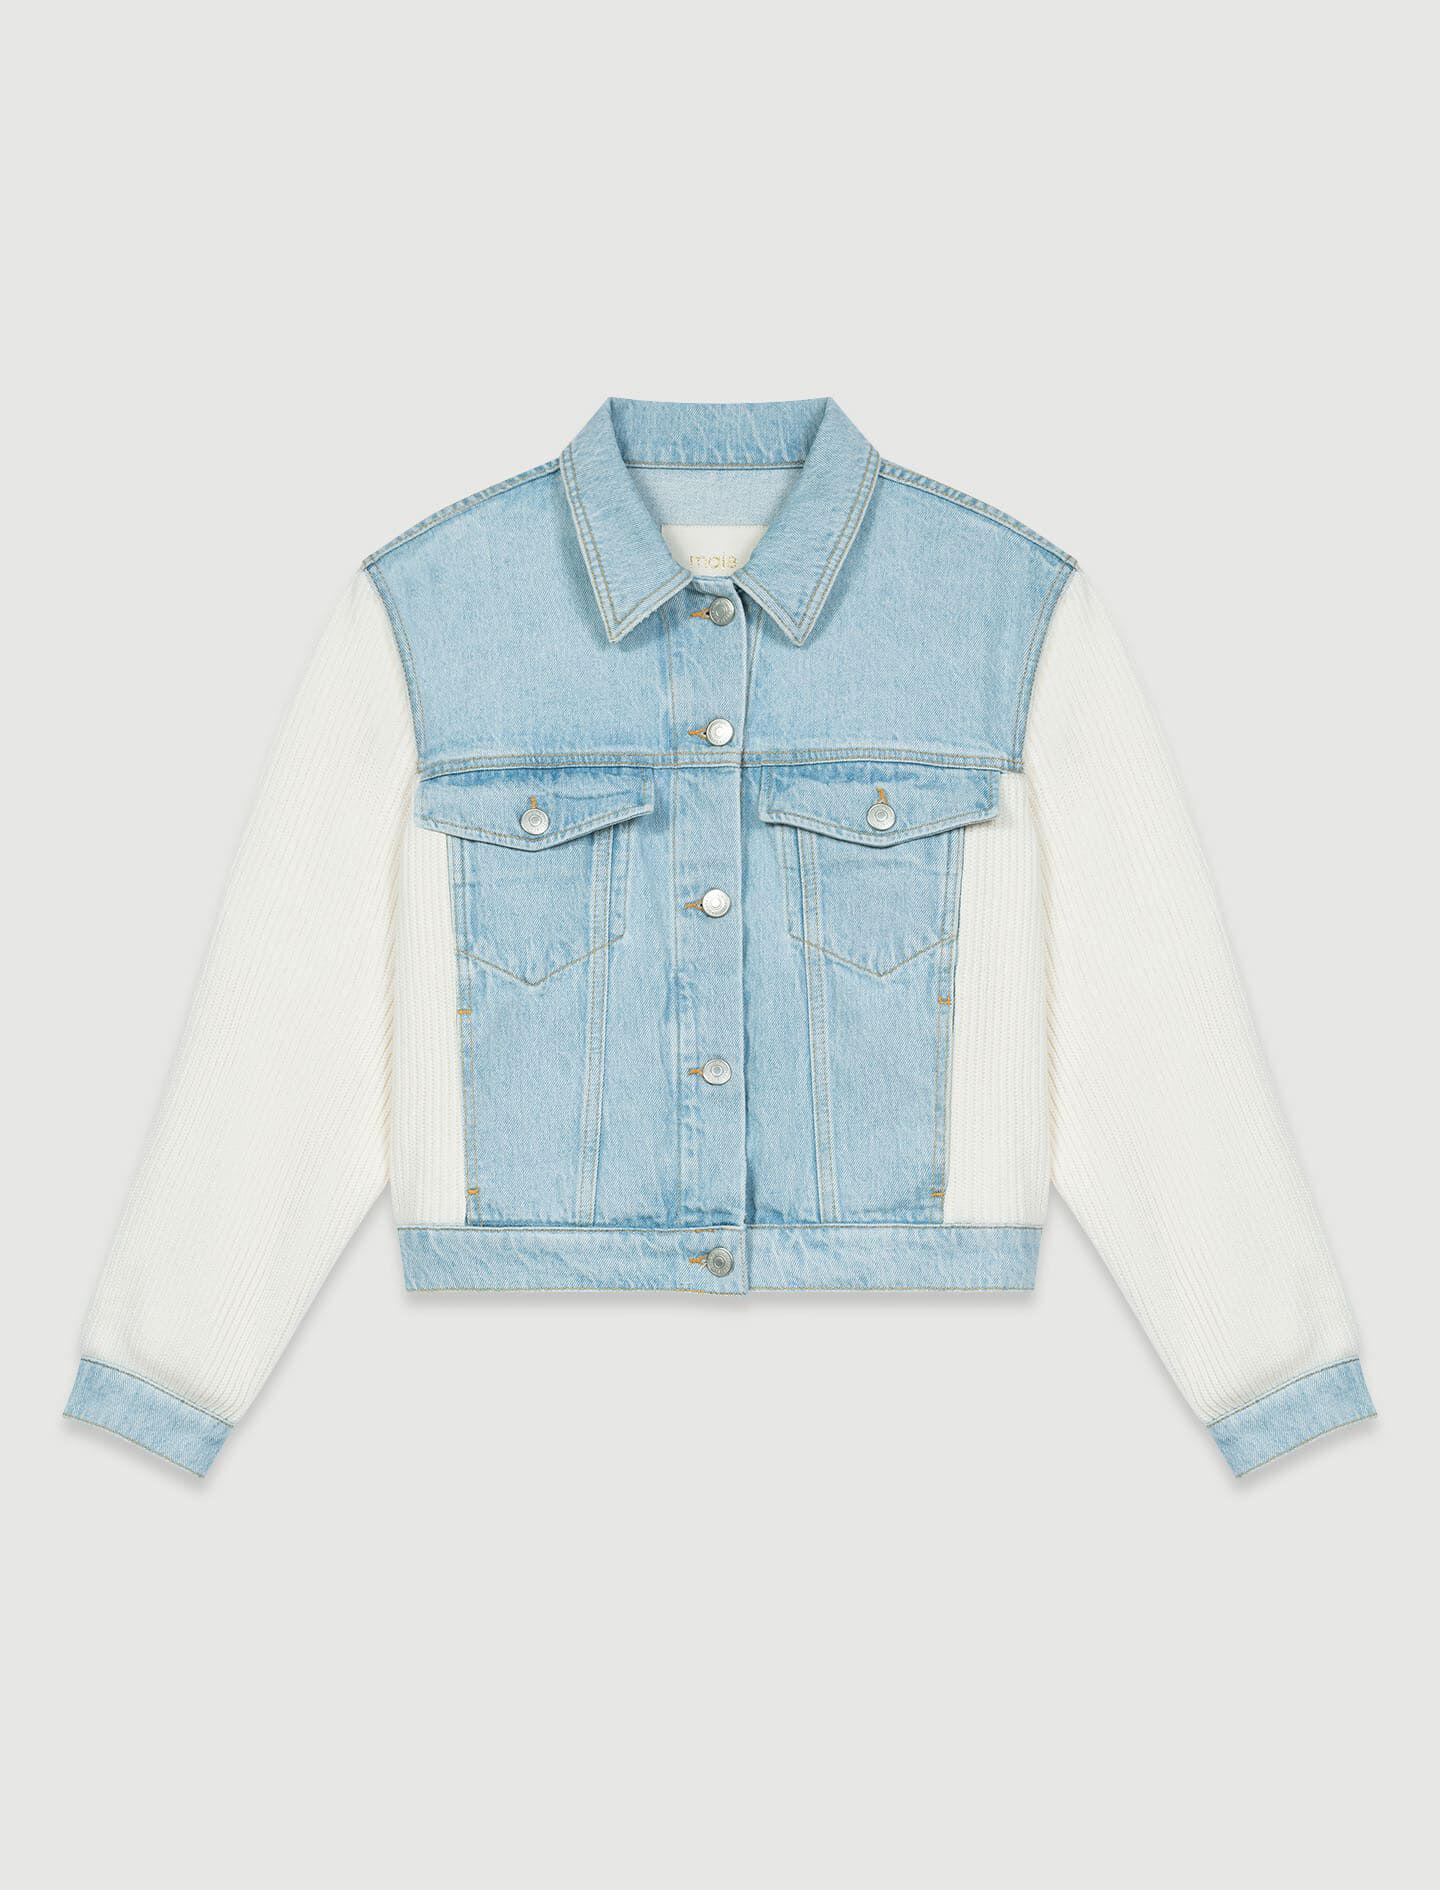 MIXED MATERIAL KNIT AND DENIM JACKET 5